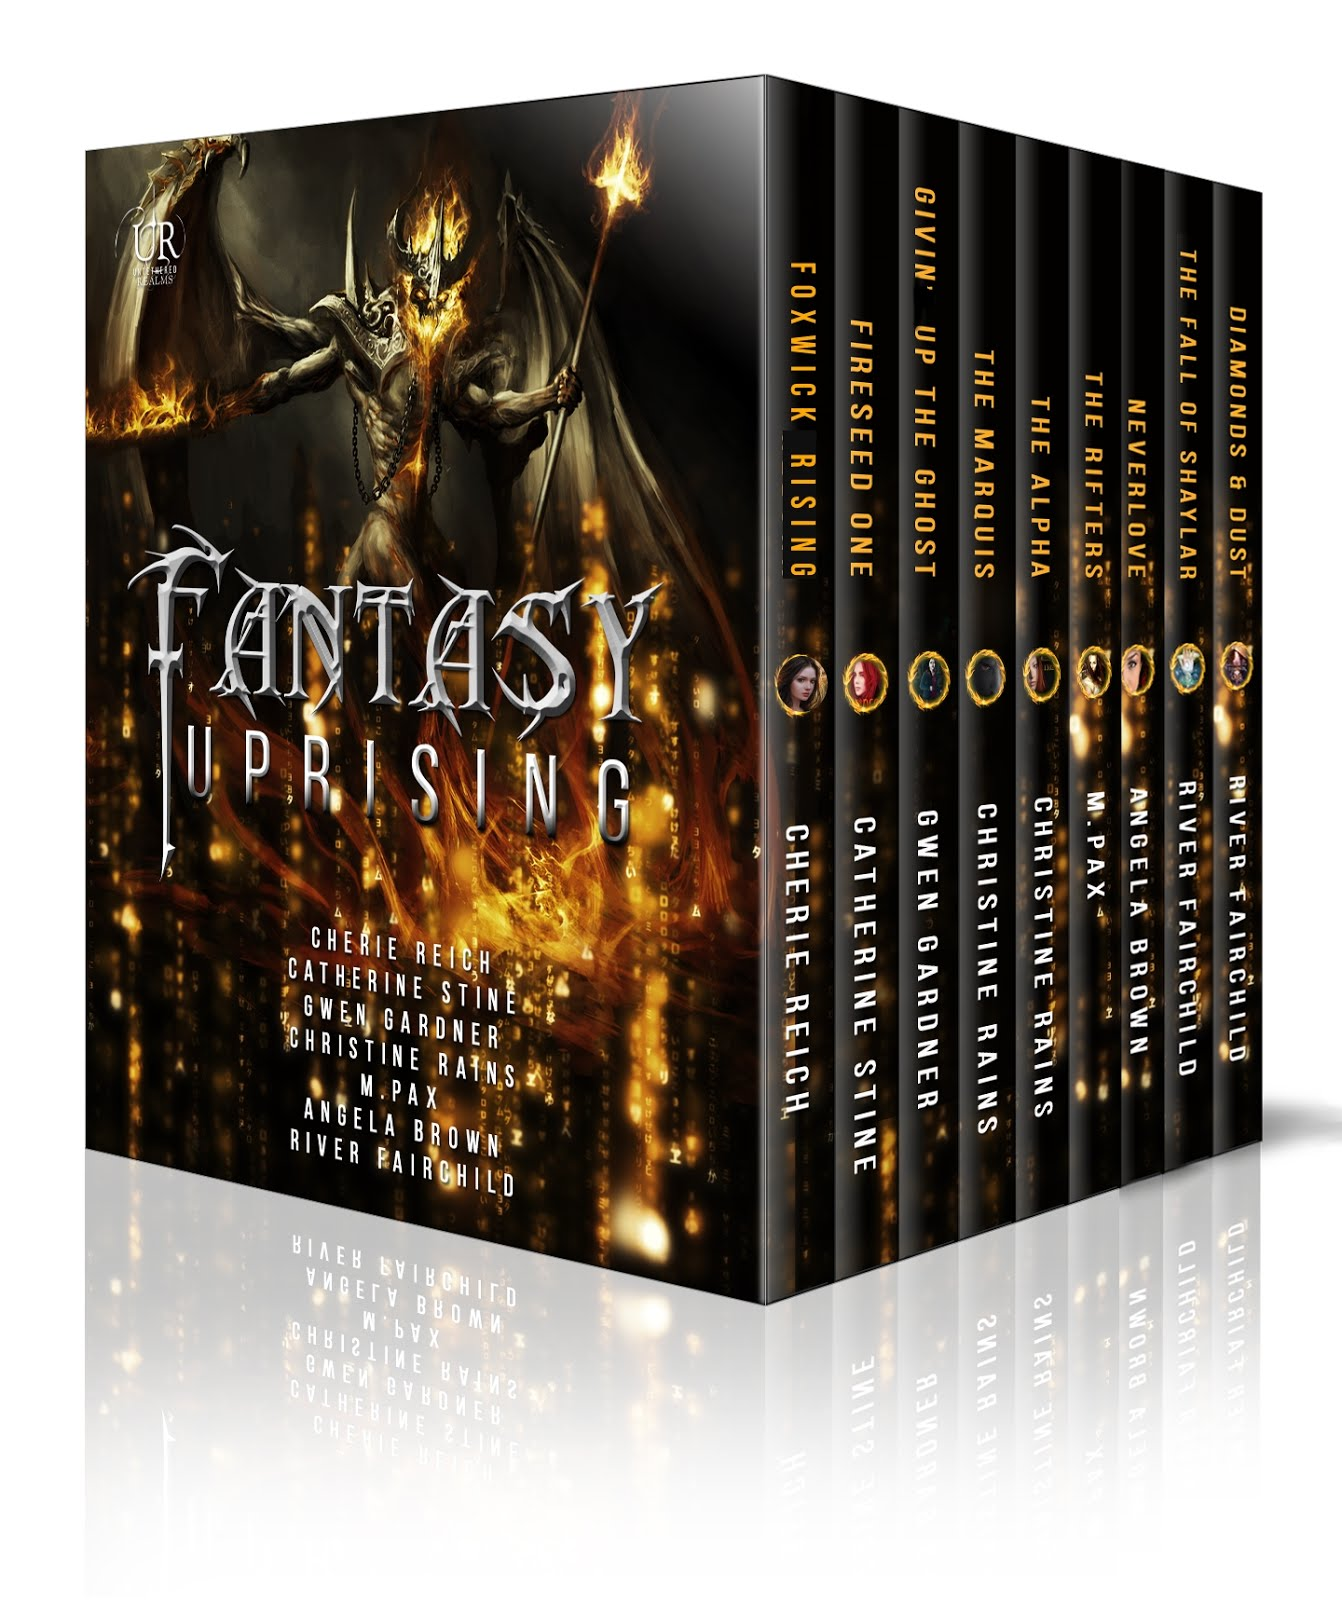 Fantasy Uprising